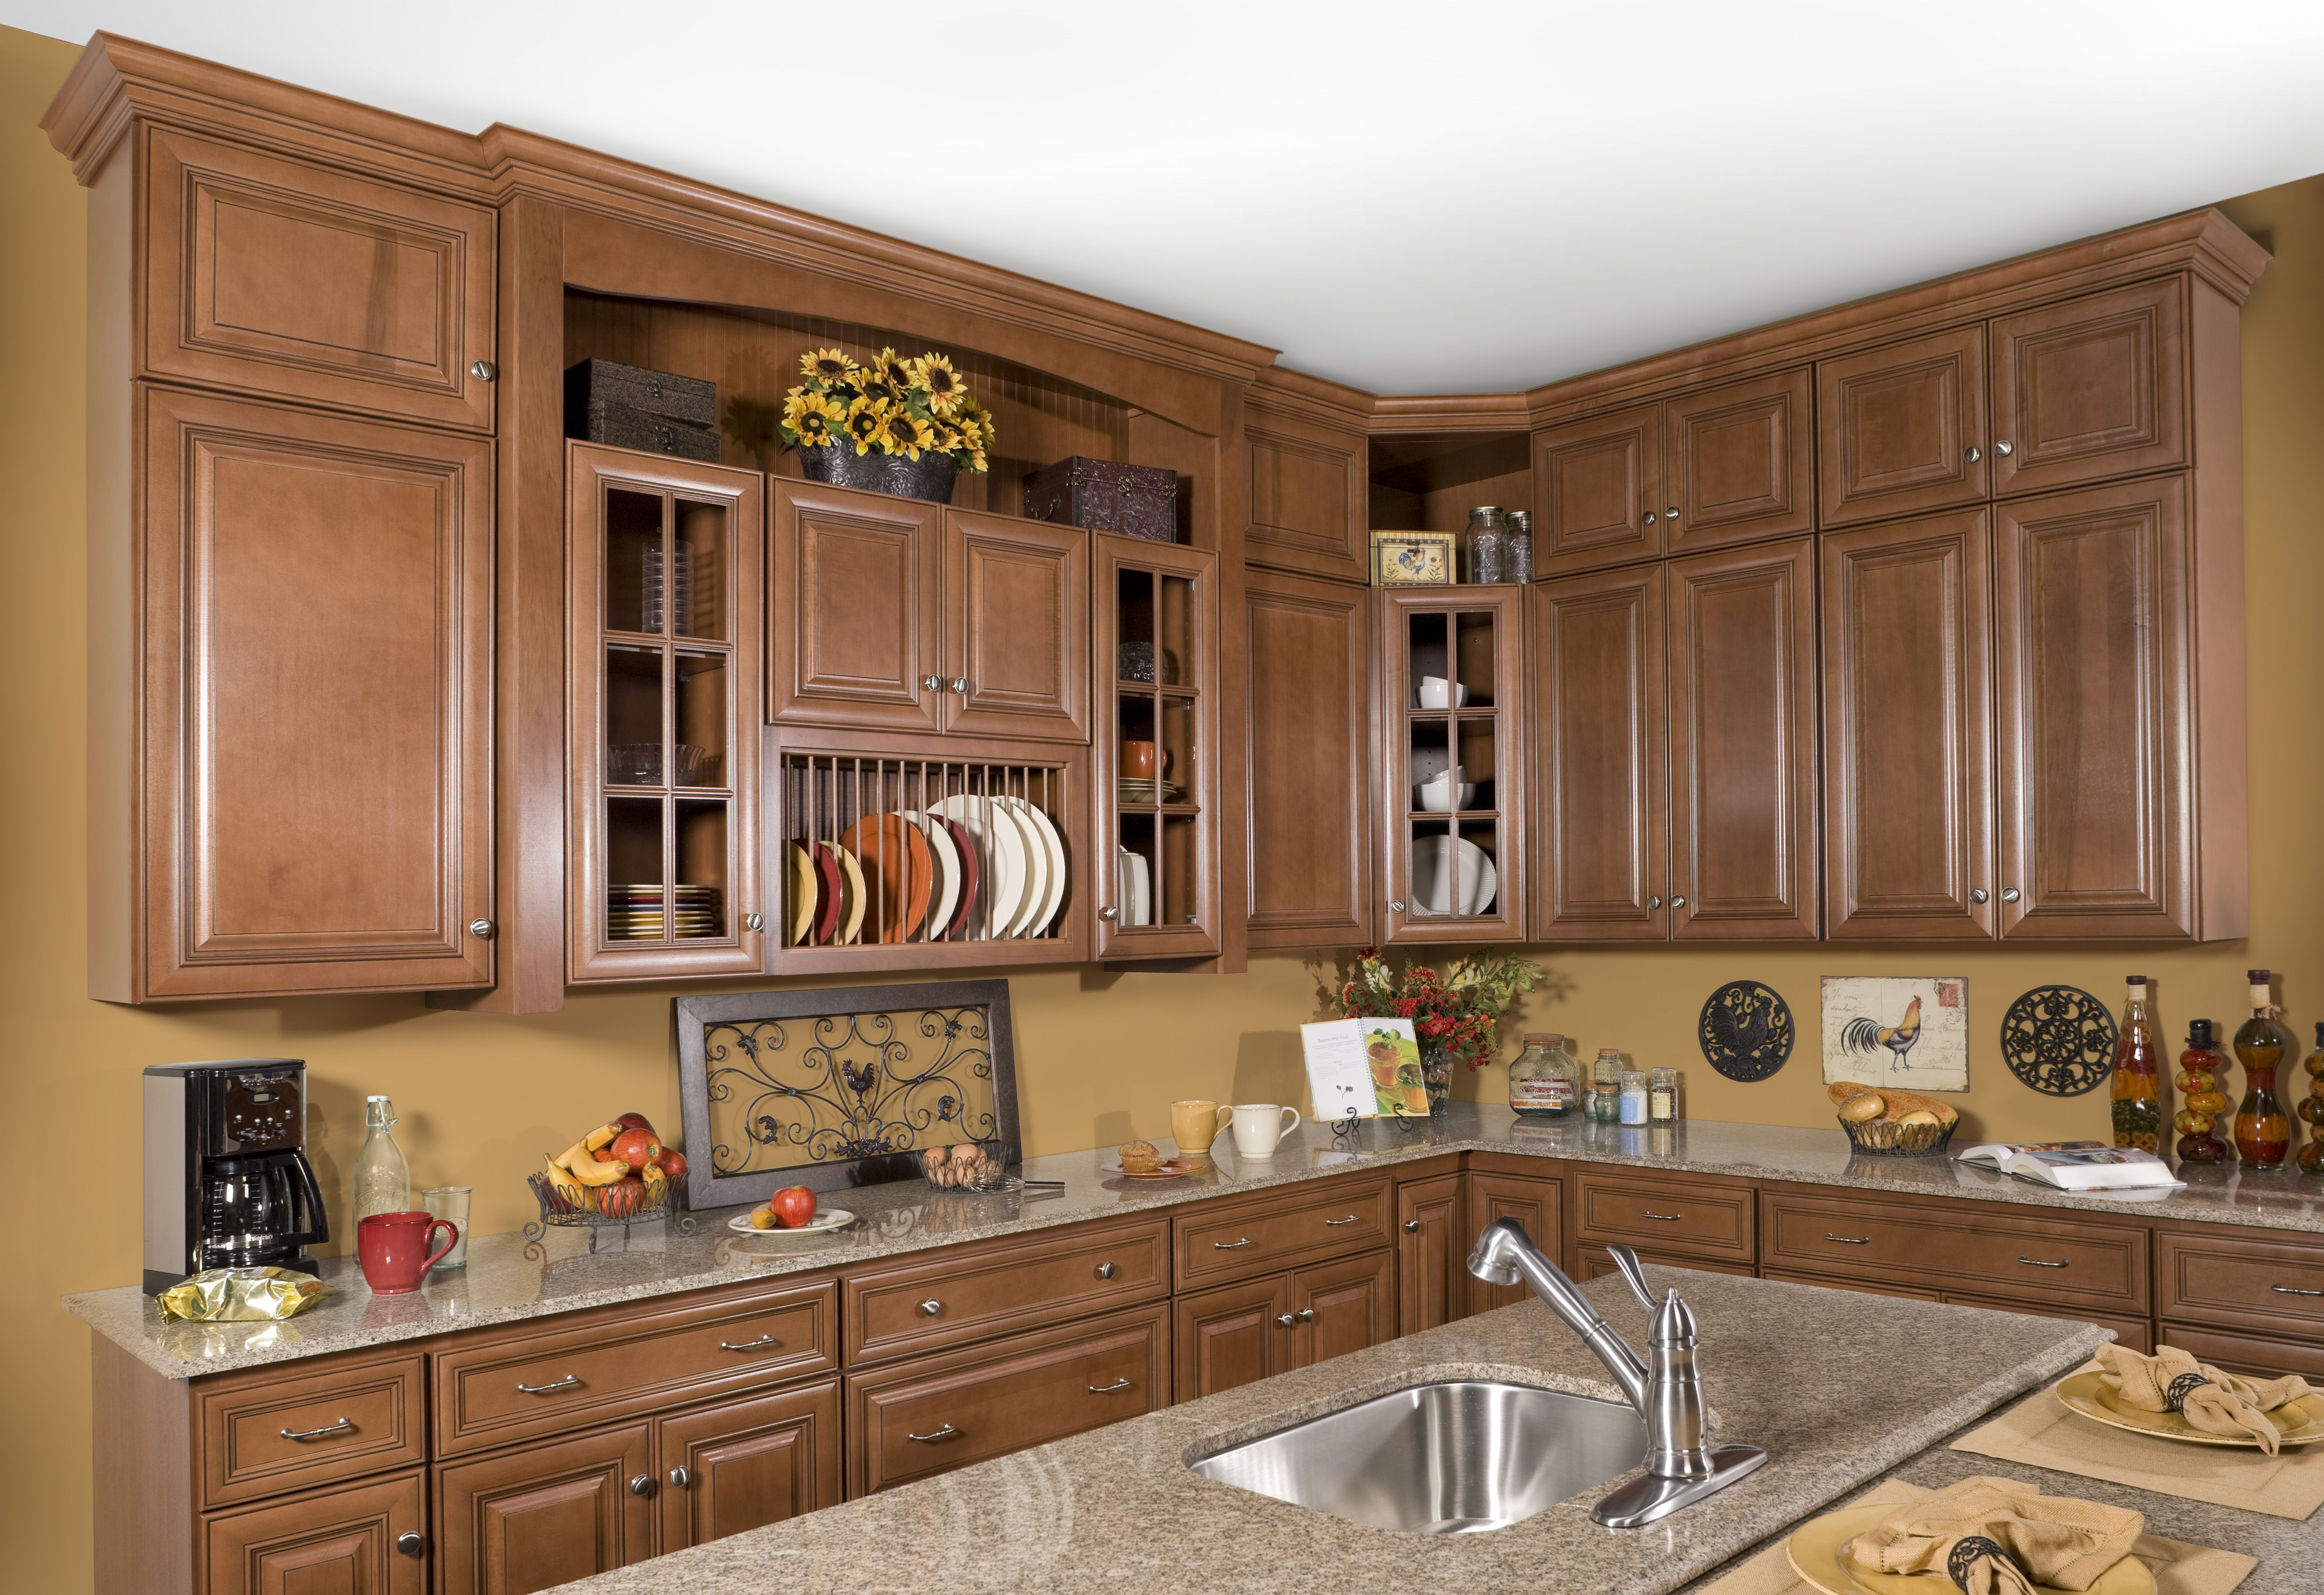 Wolf Classic Cabinets In Hudson Heritage Brown With A Chocolate Glaze Classic Kitchen Cabinets Luxury Kitchen Cabinets Classic Cabinets